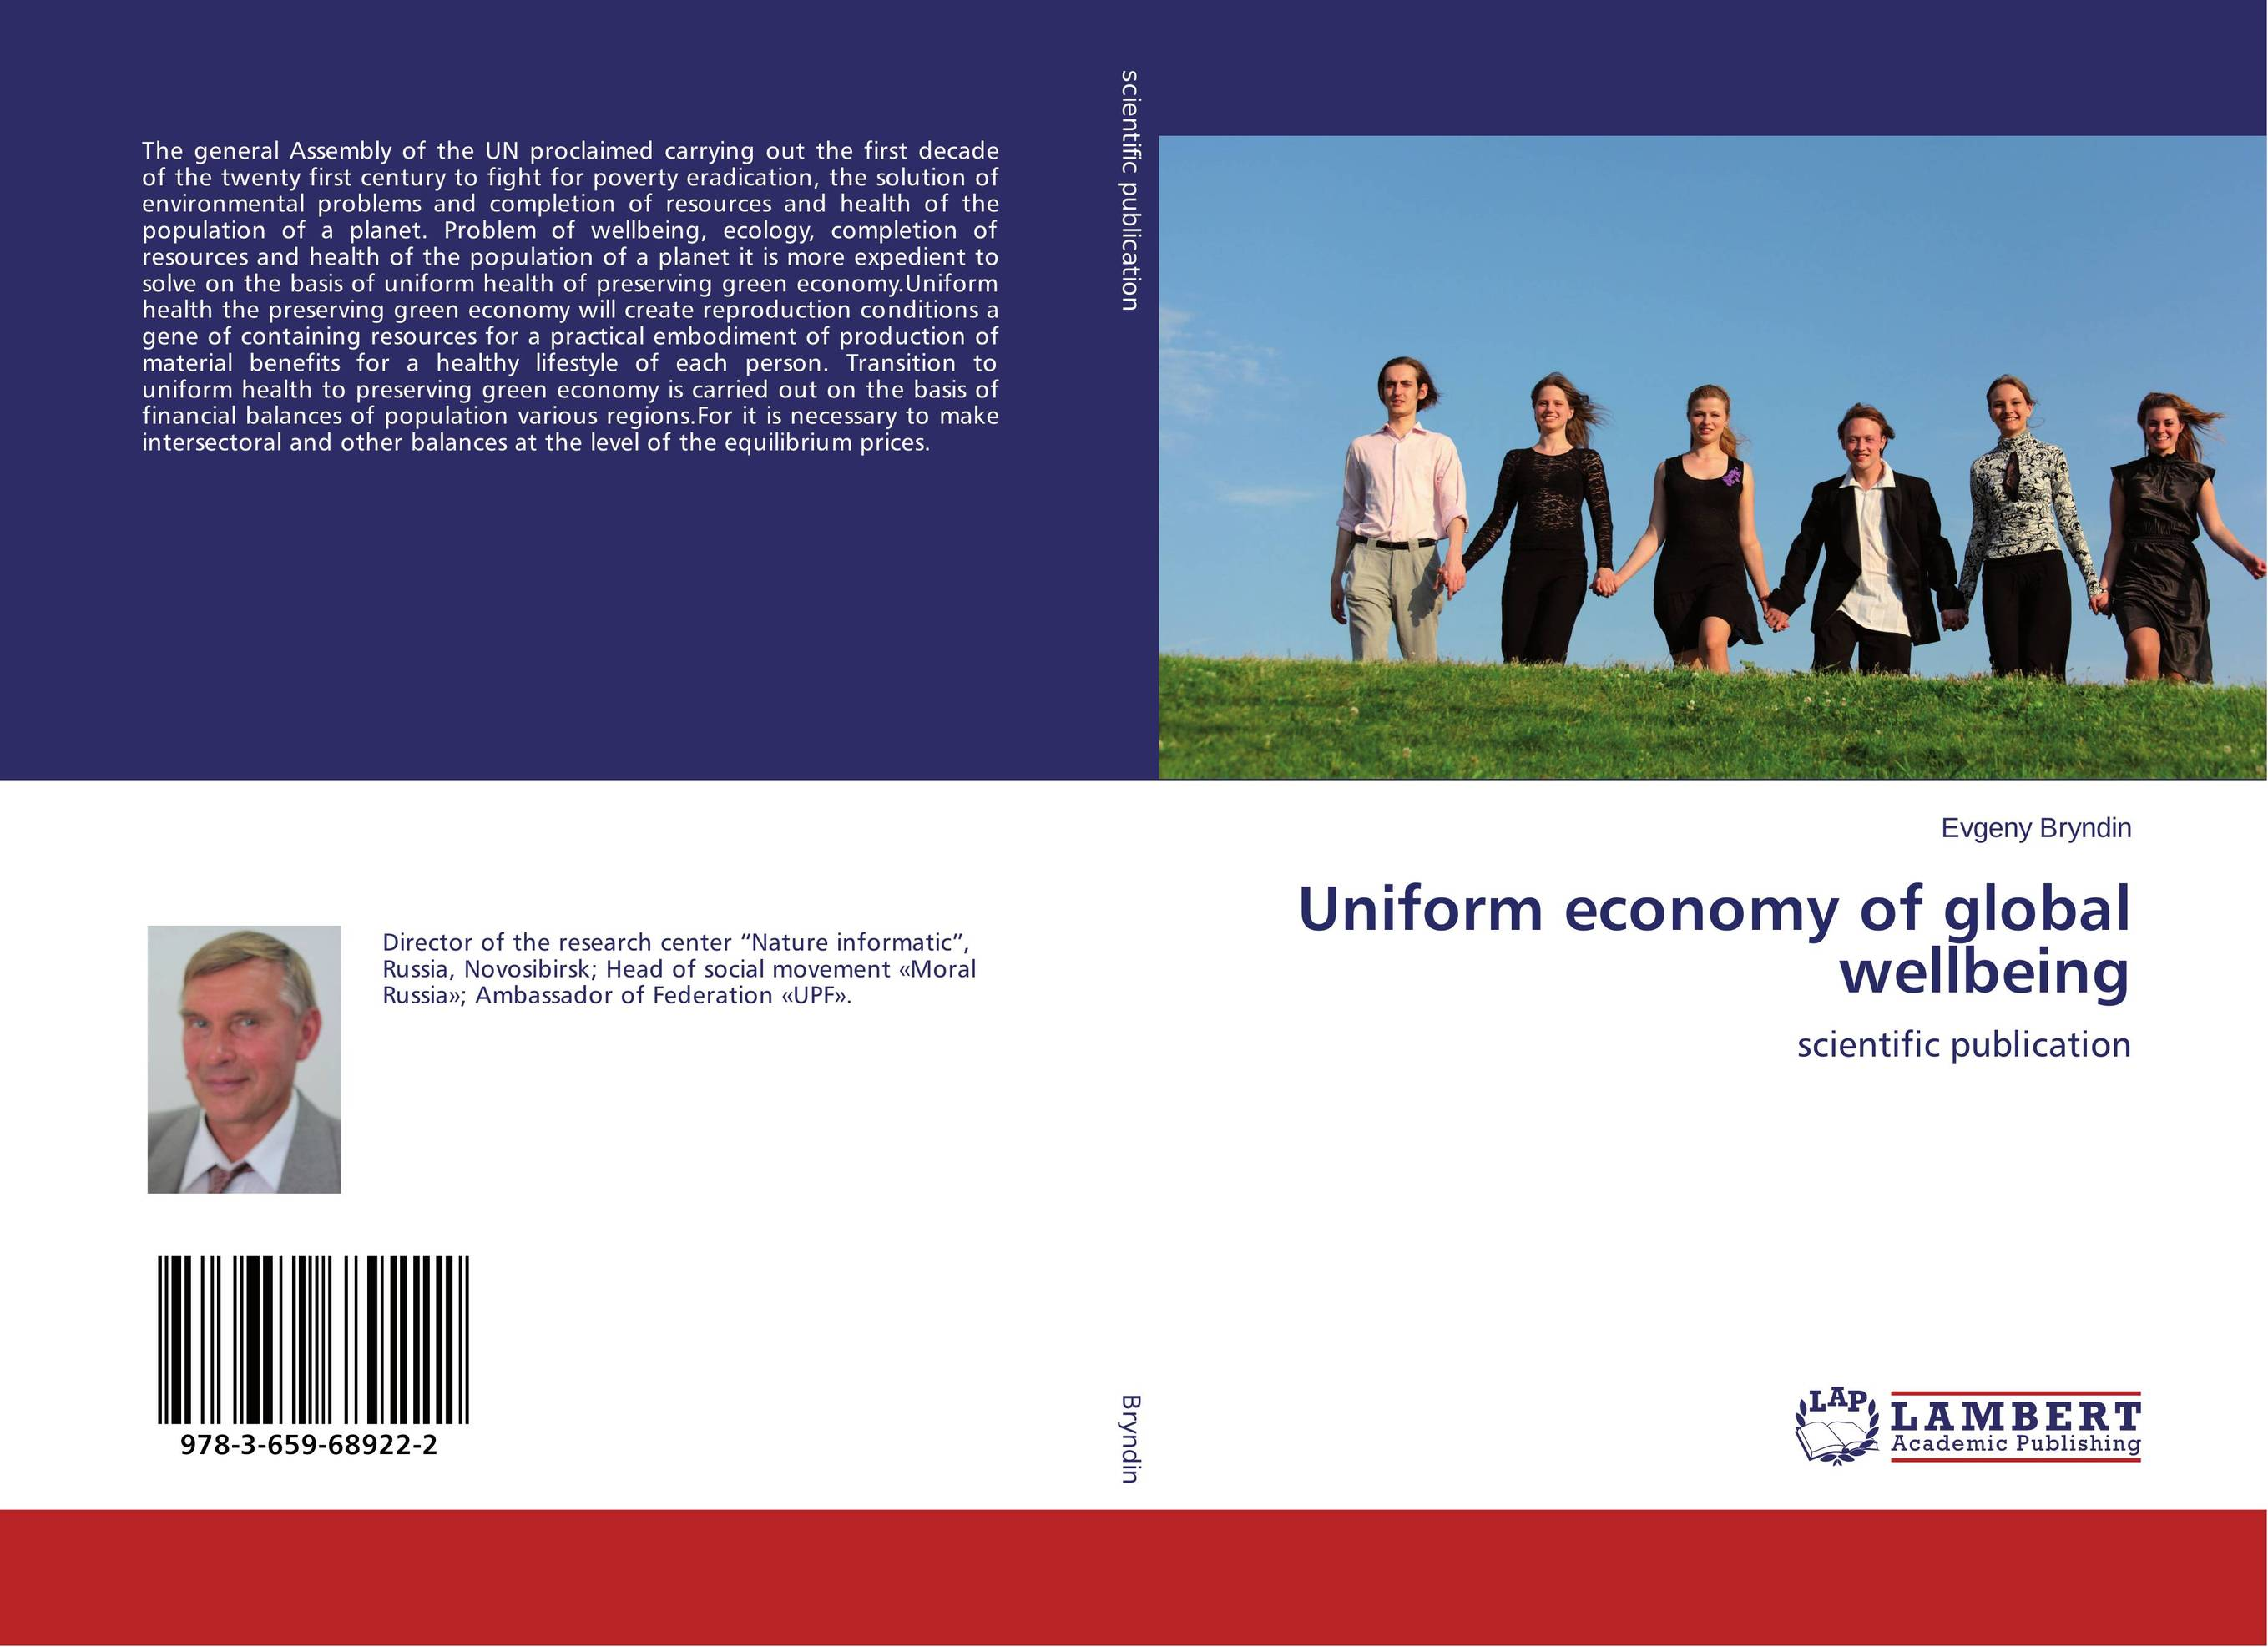 Uniform economy of global wellbeing completion